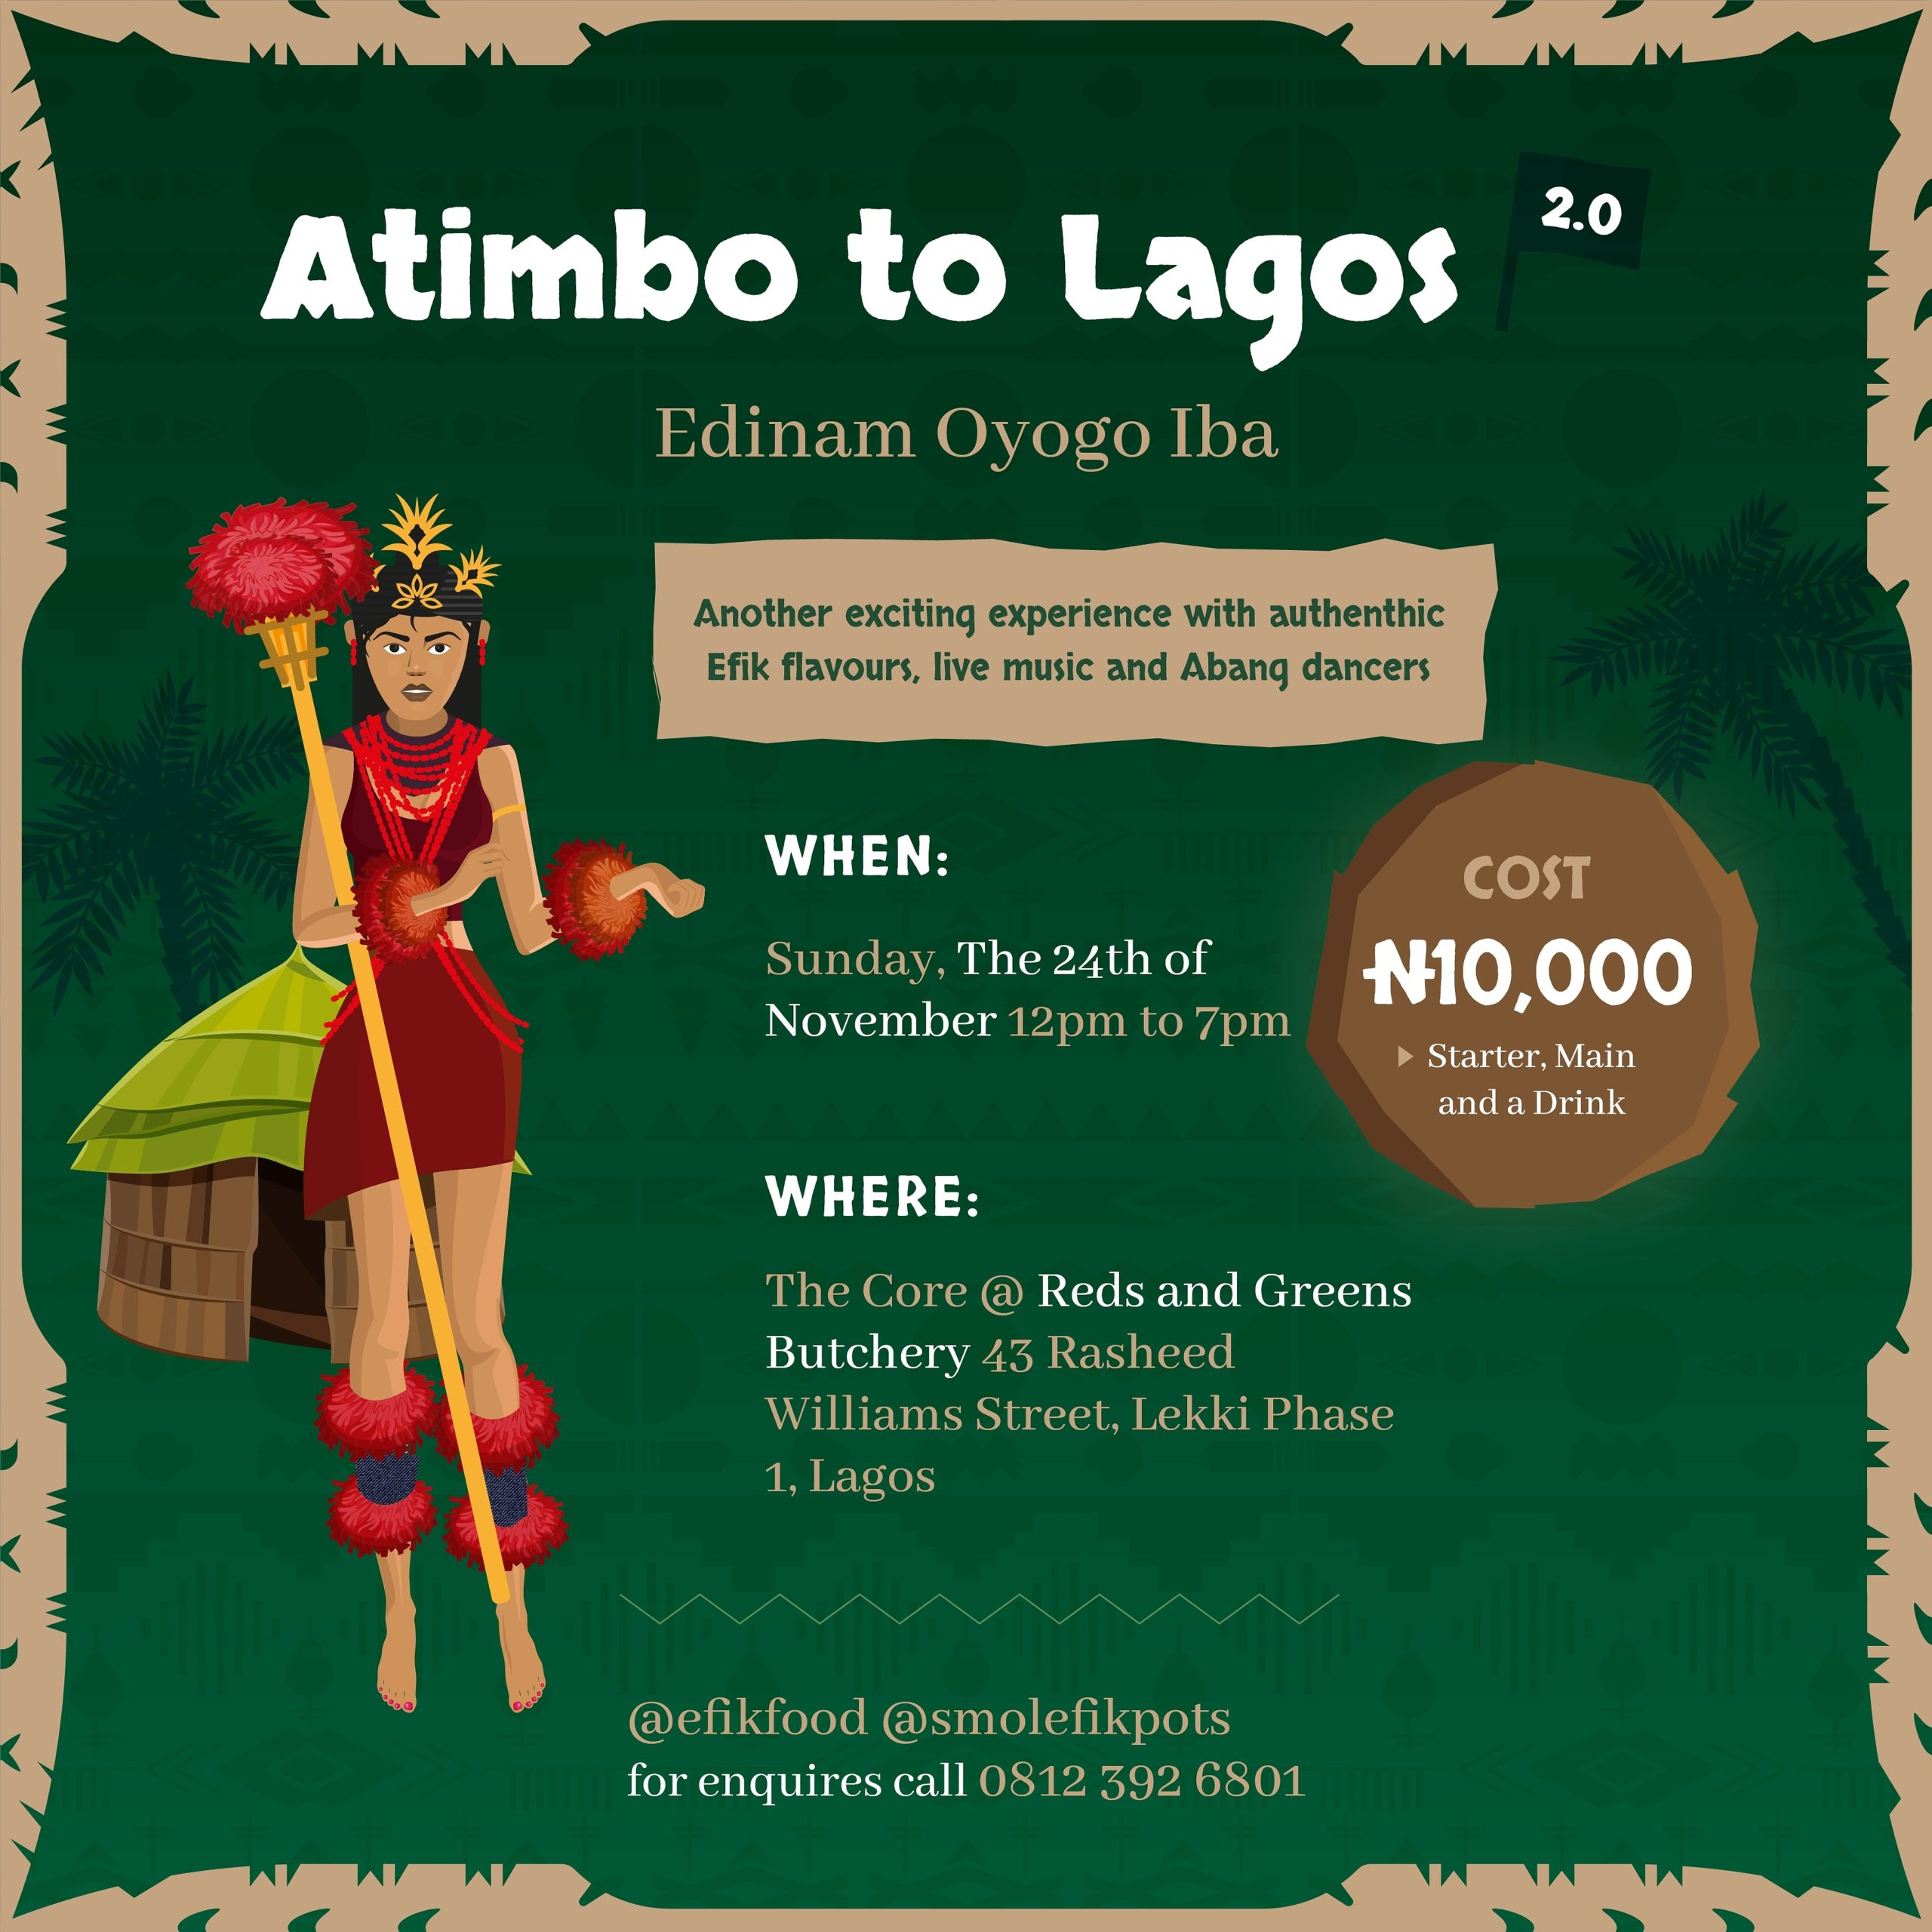 From the Delicious Efik Food to the Live Music, 'Atimbo to Lagos 2.0' was a Rich Display of Culture & Colors